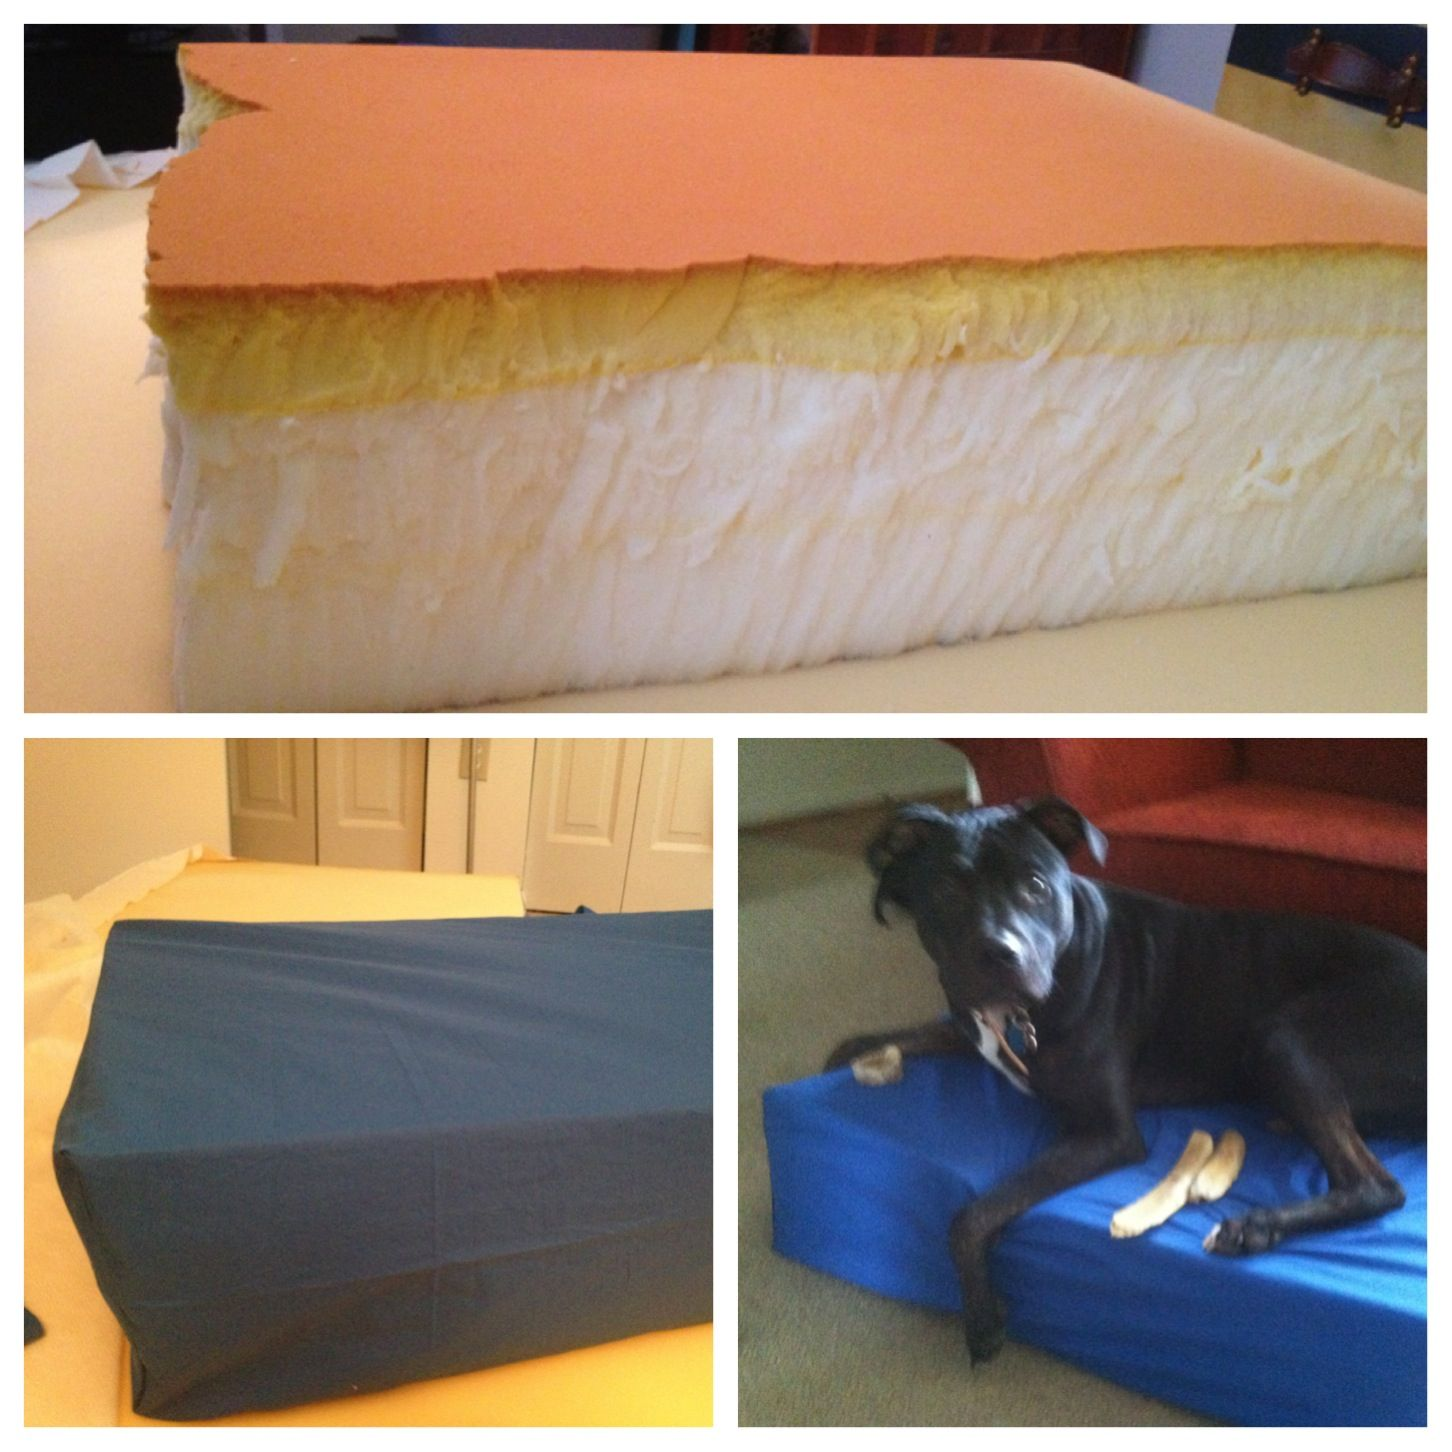 Old memory foam bed cut down to dog size and fabric sewn around for a DIY